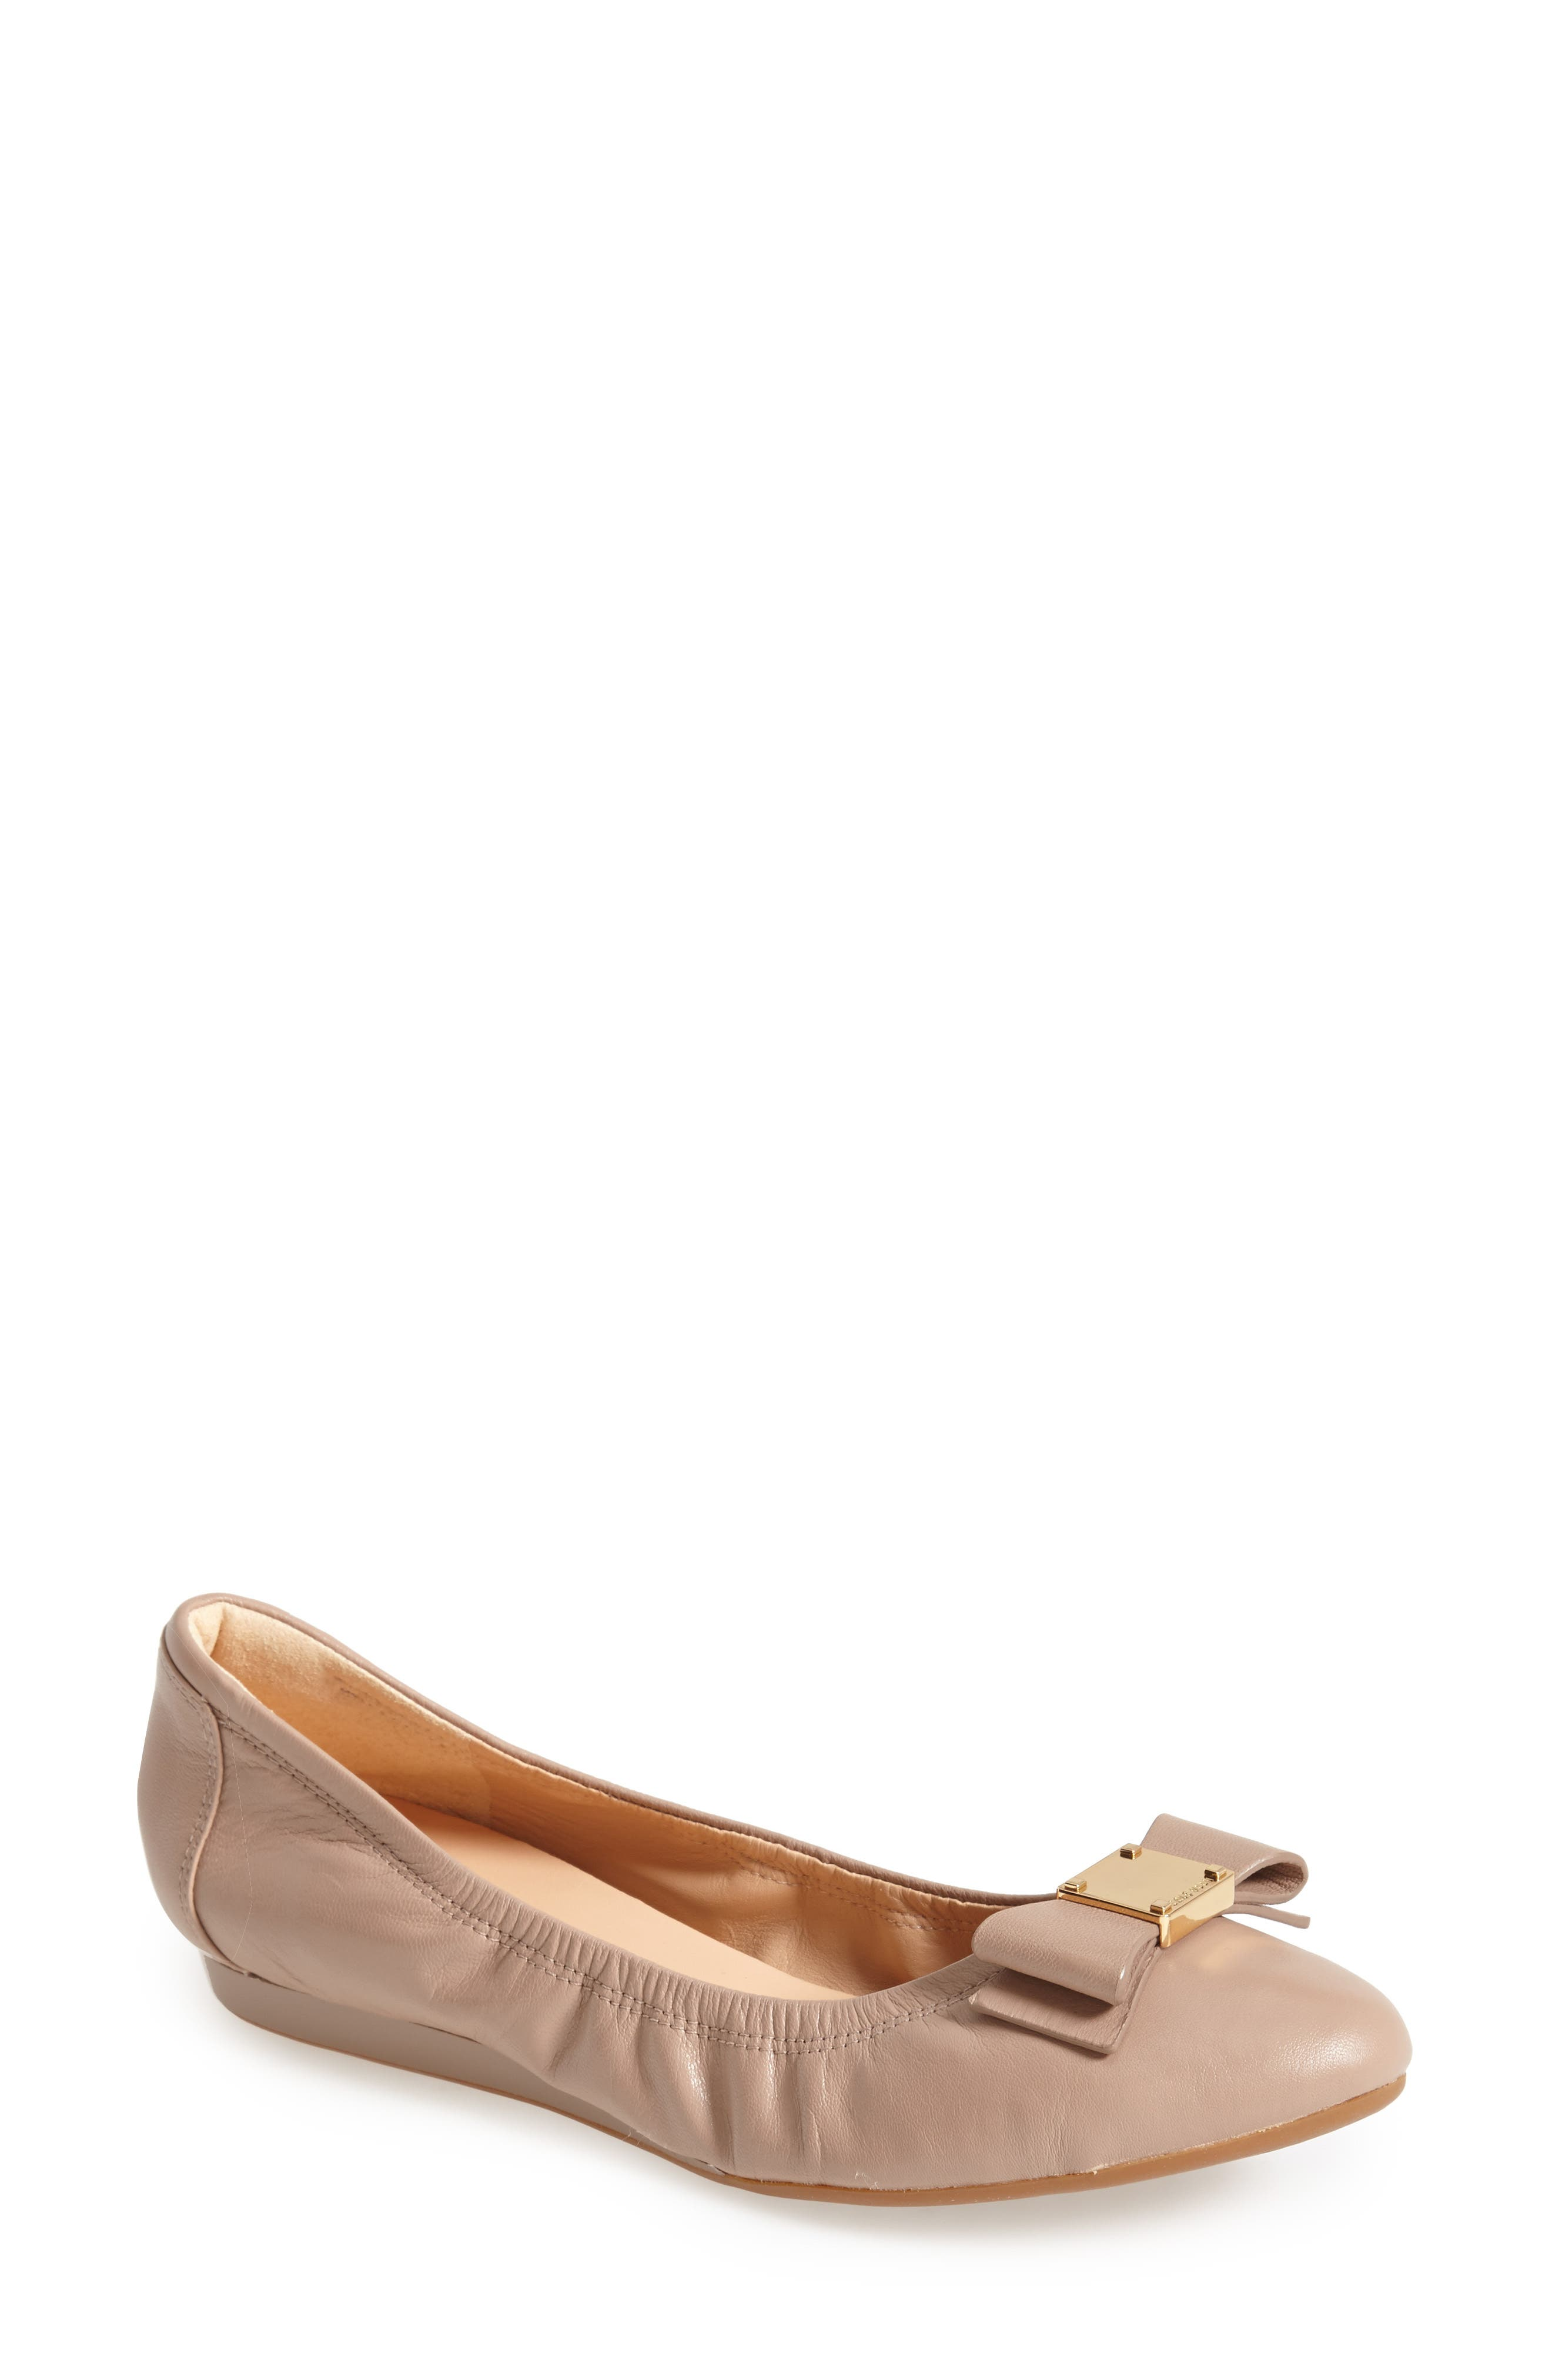 COLE HAAN 'Tali' Bow Ballet Flat, Main, color, MAPLE SUGAR